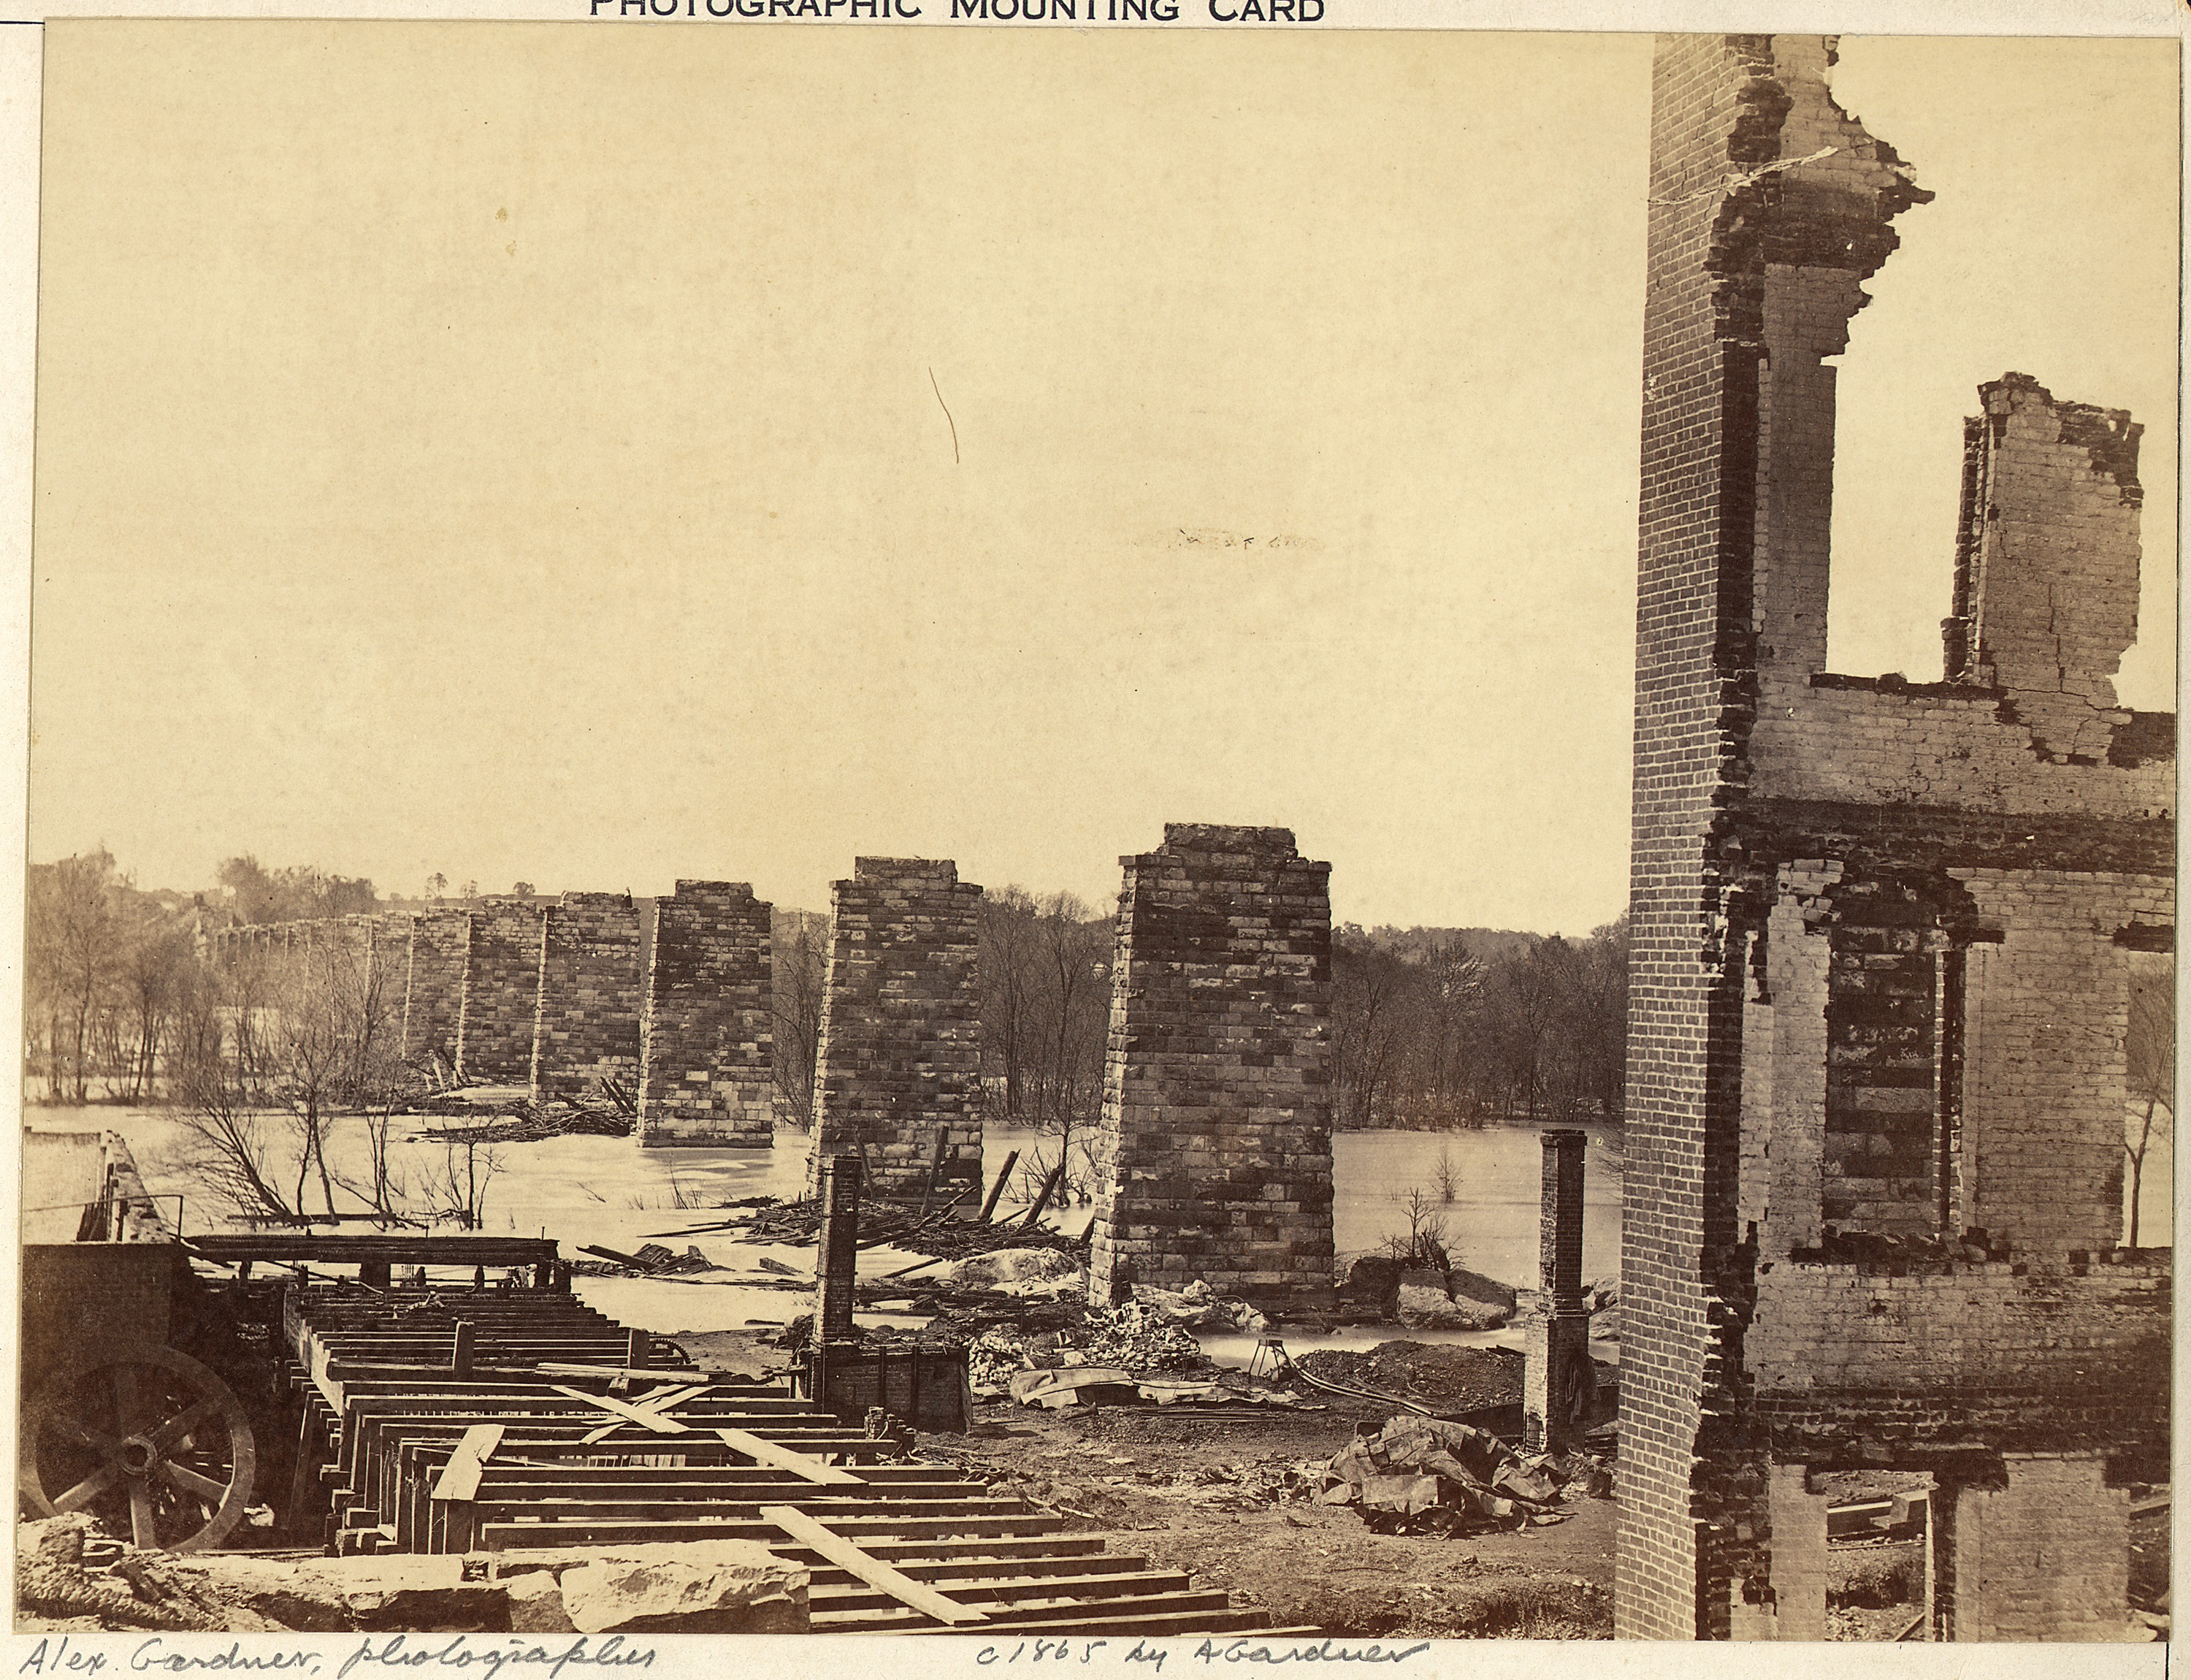 http://upload.wikimedia.org/wikipedia/commons/f/f2/Virginia,_Richmond_and_Petersburg_Railroad_Bridge,_across_the_James,_Ruins_of._-_NARA_-_533361.jpg